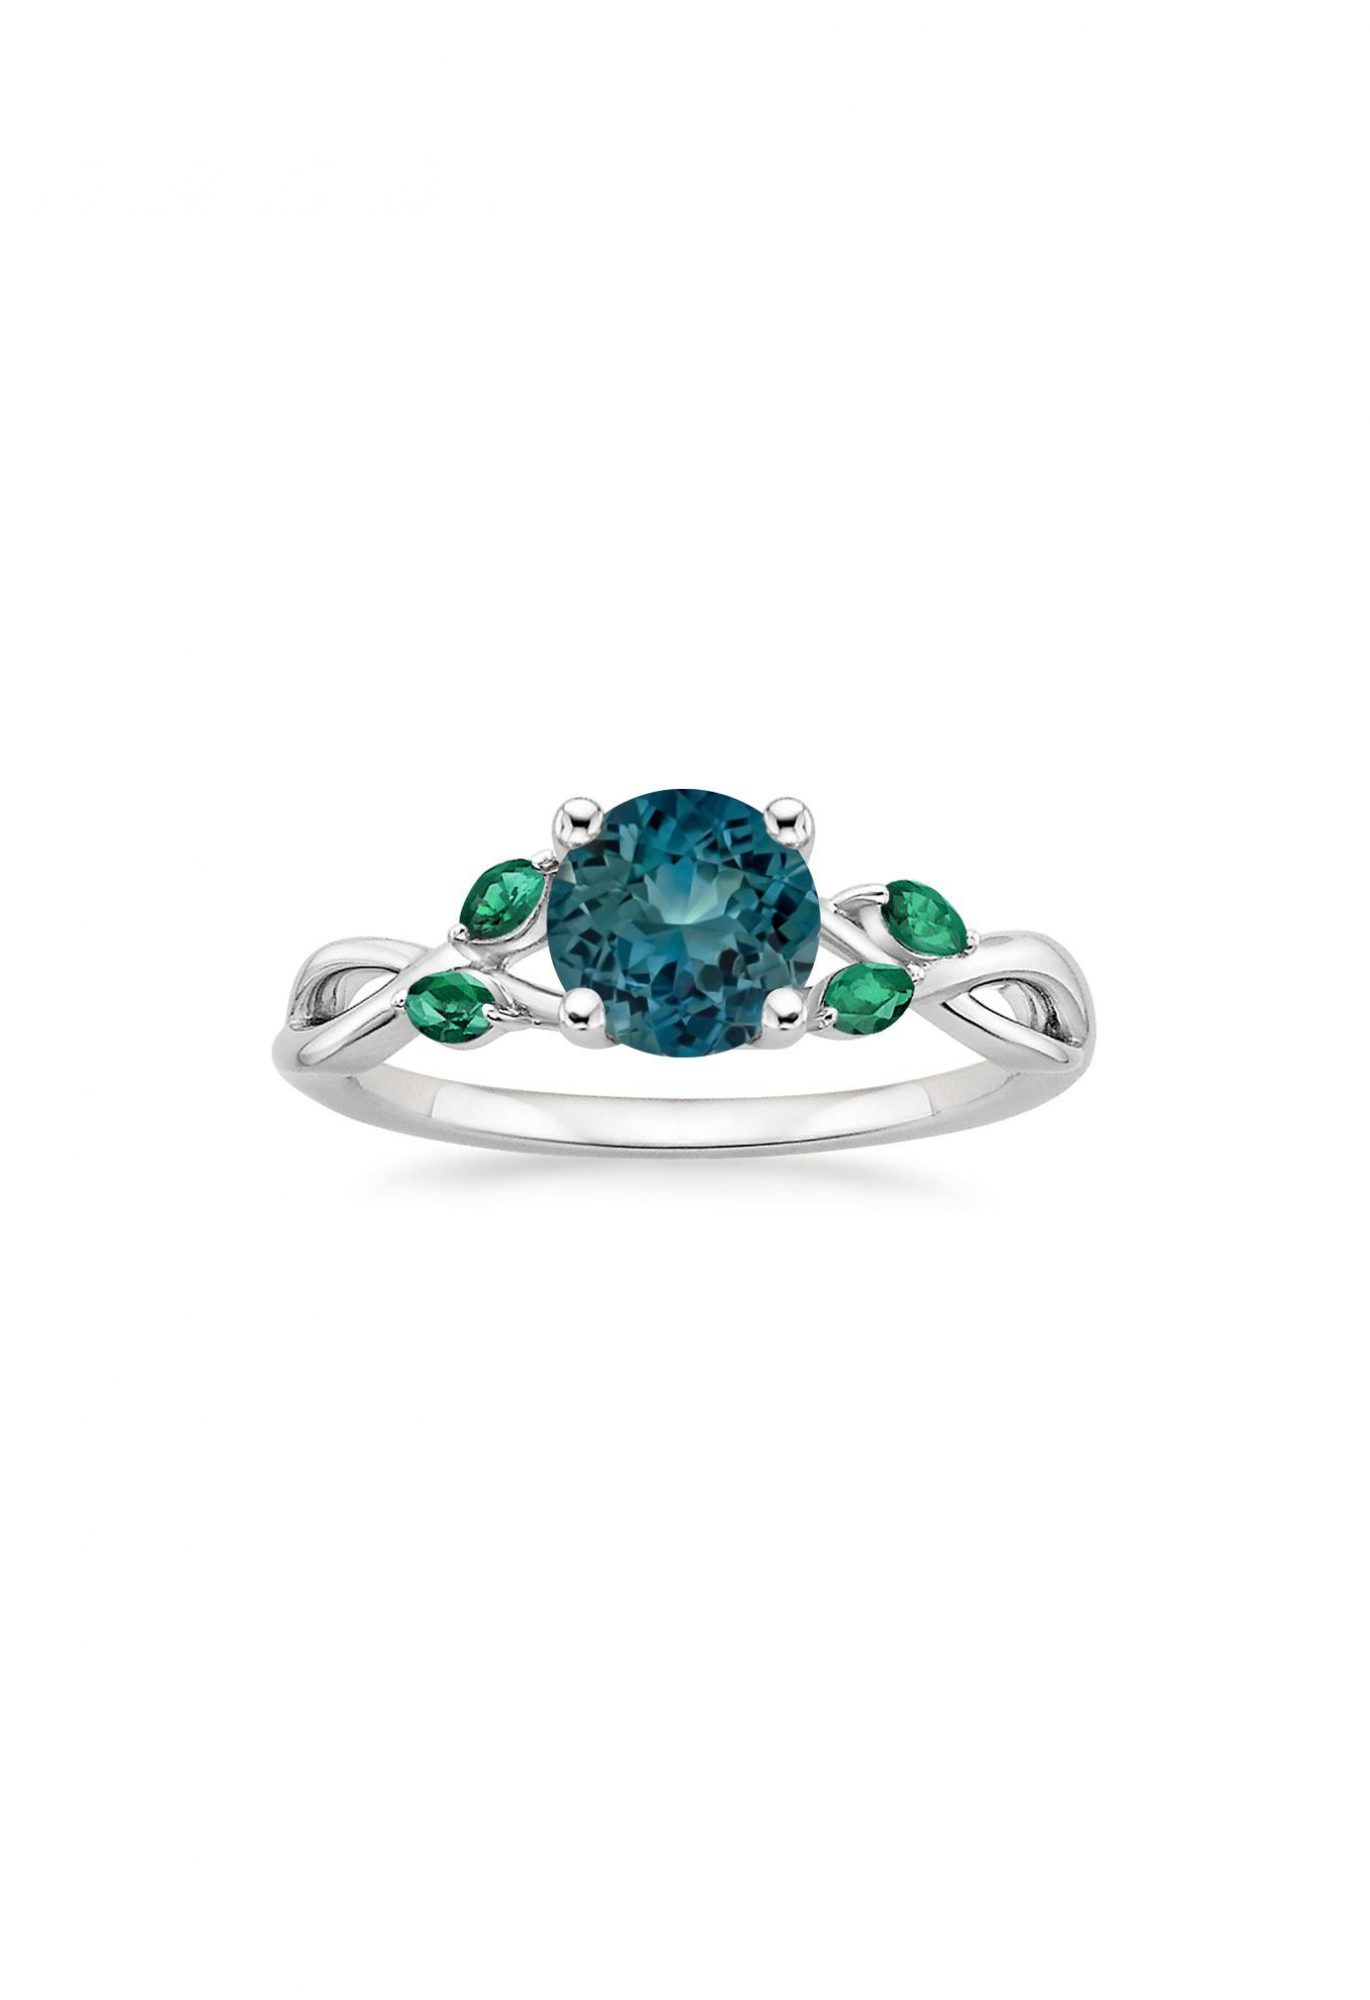 brilliant-earth_teal-sapphire-willow-engagnement-ring